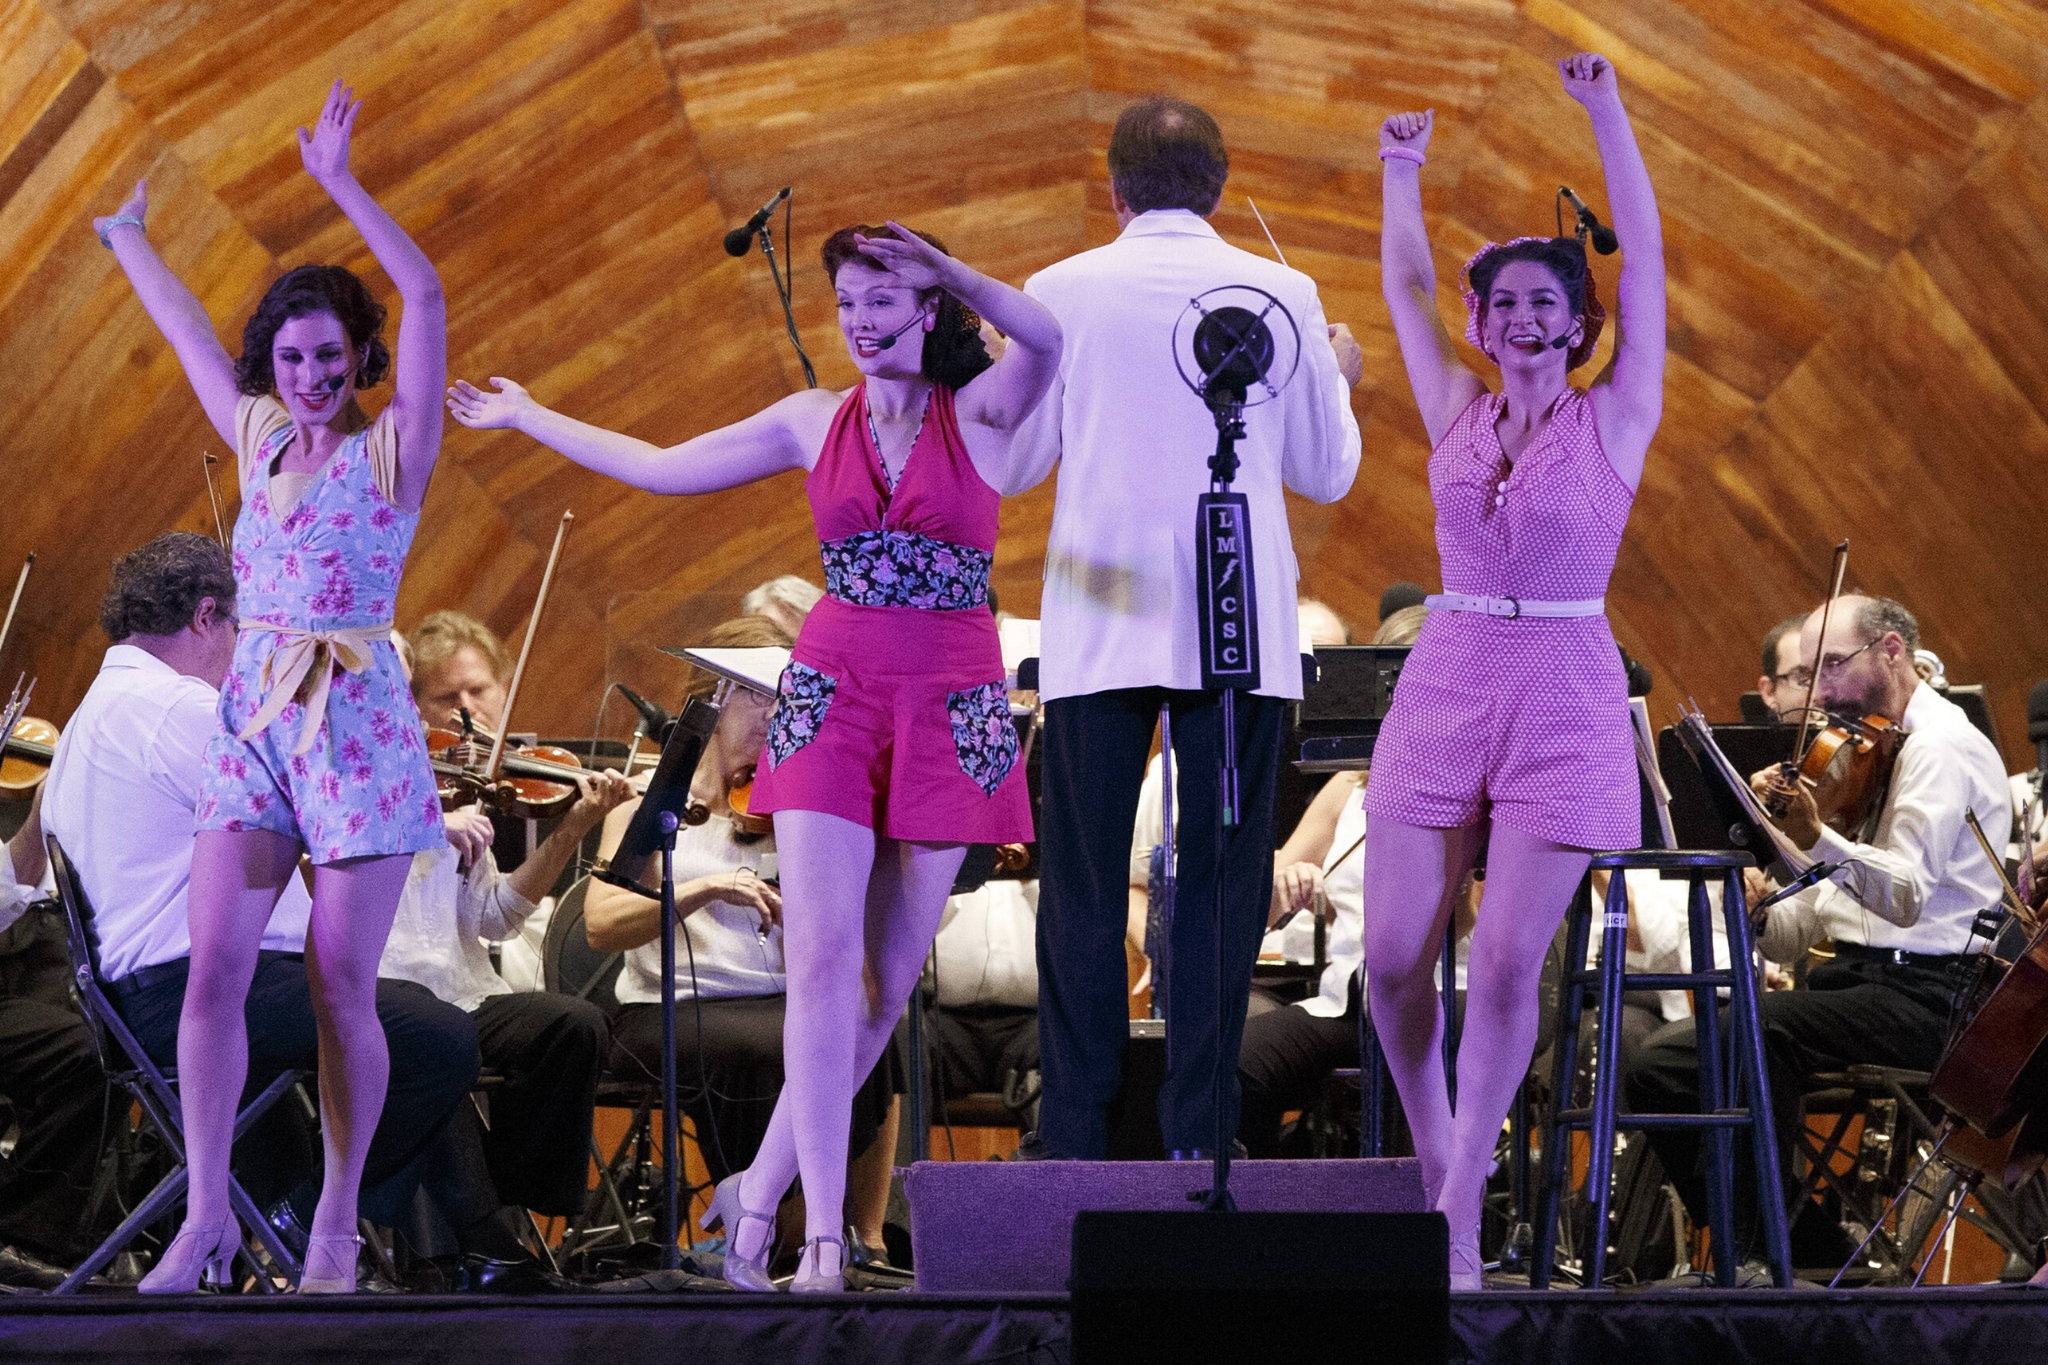 Leah Carnow, Brittany Martel, and Suzi Weisberg (Ensemble) in The Boys From Syracuse, CSC and Landmarks Orchestra 2016